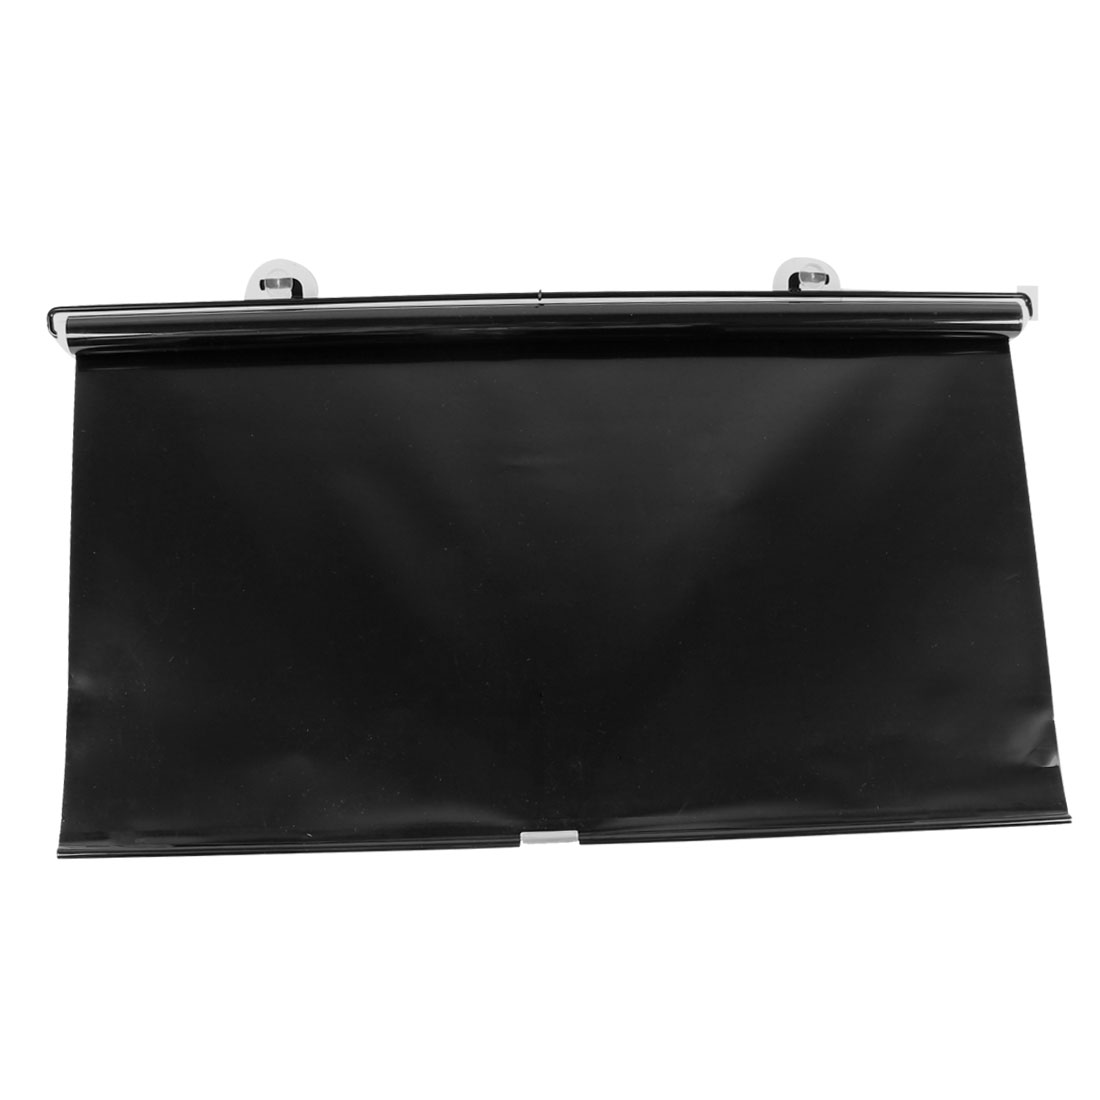 Vehicle Truck Car Black Roll Design Sun Visor Window Sunshield 145 x 63cm